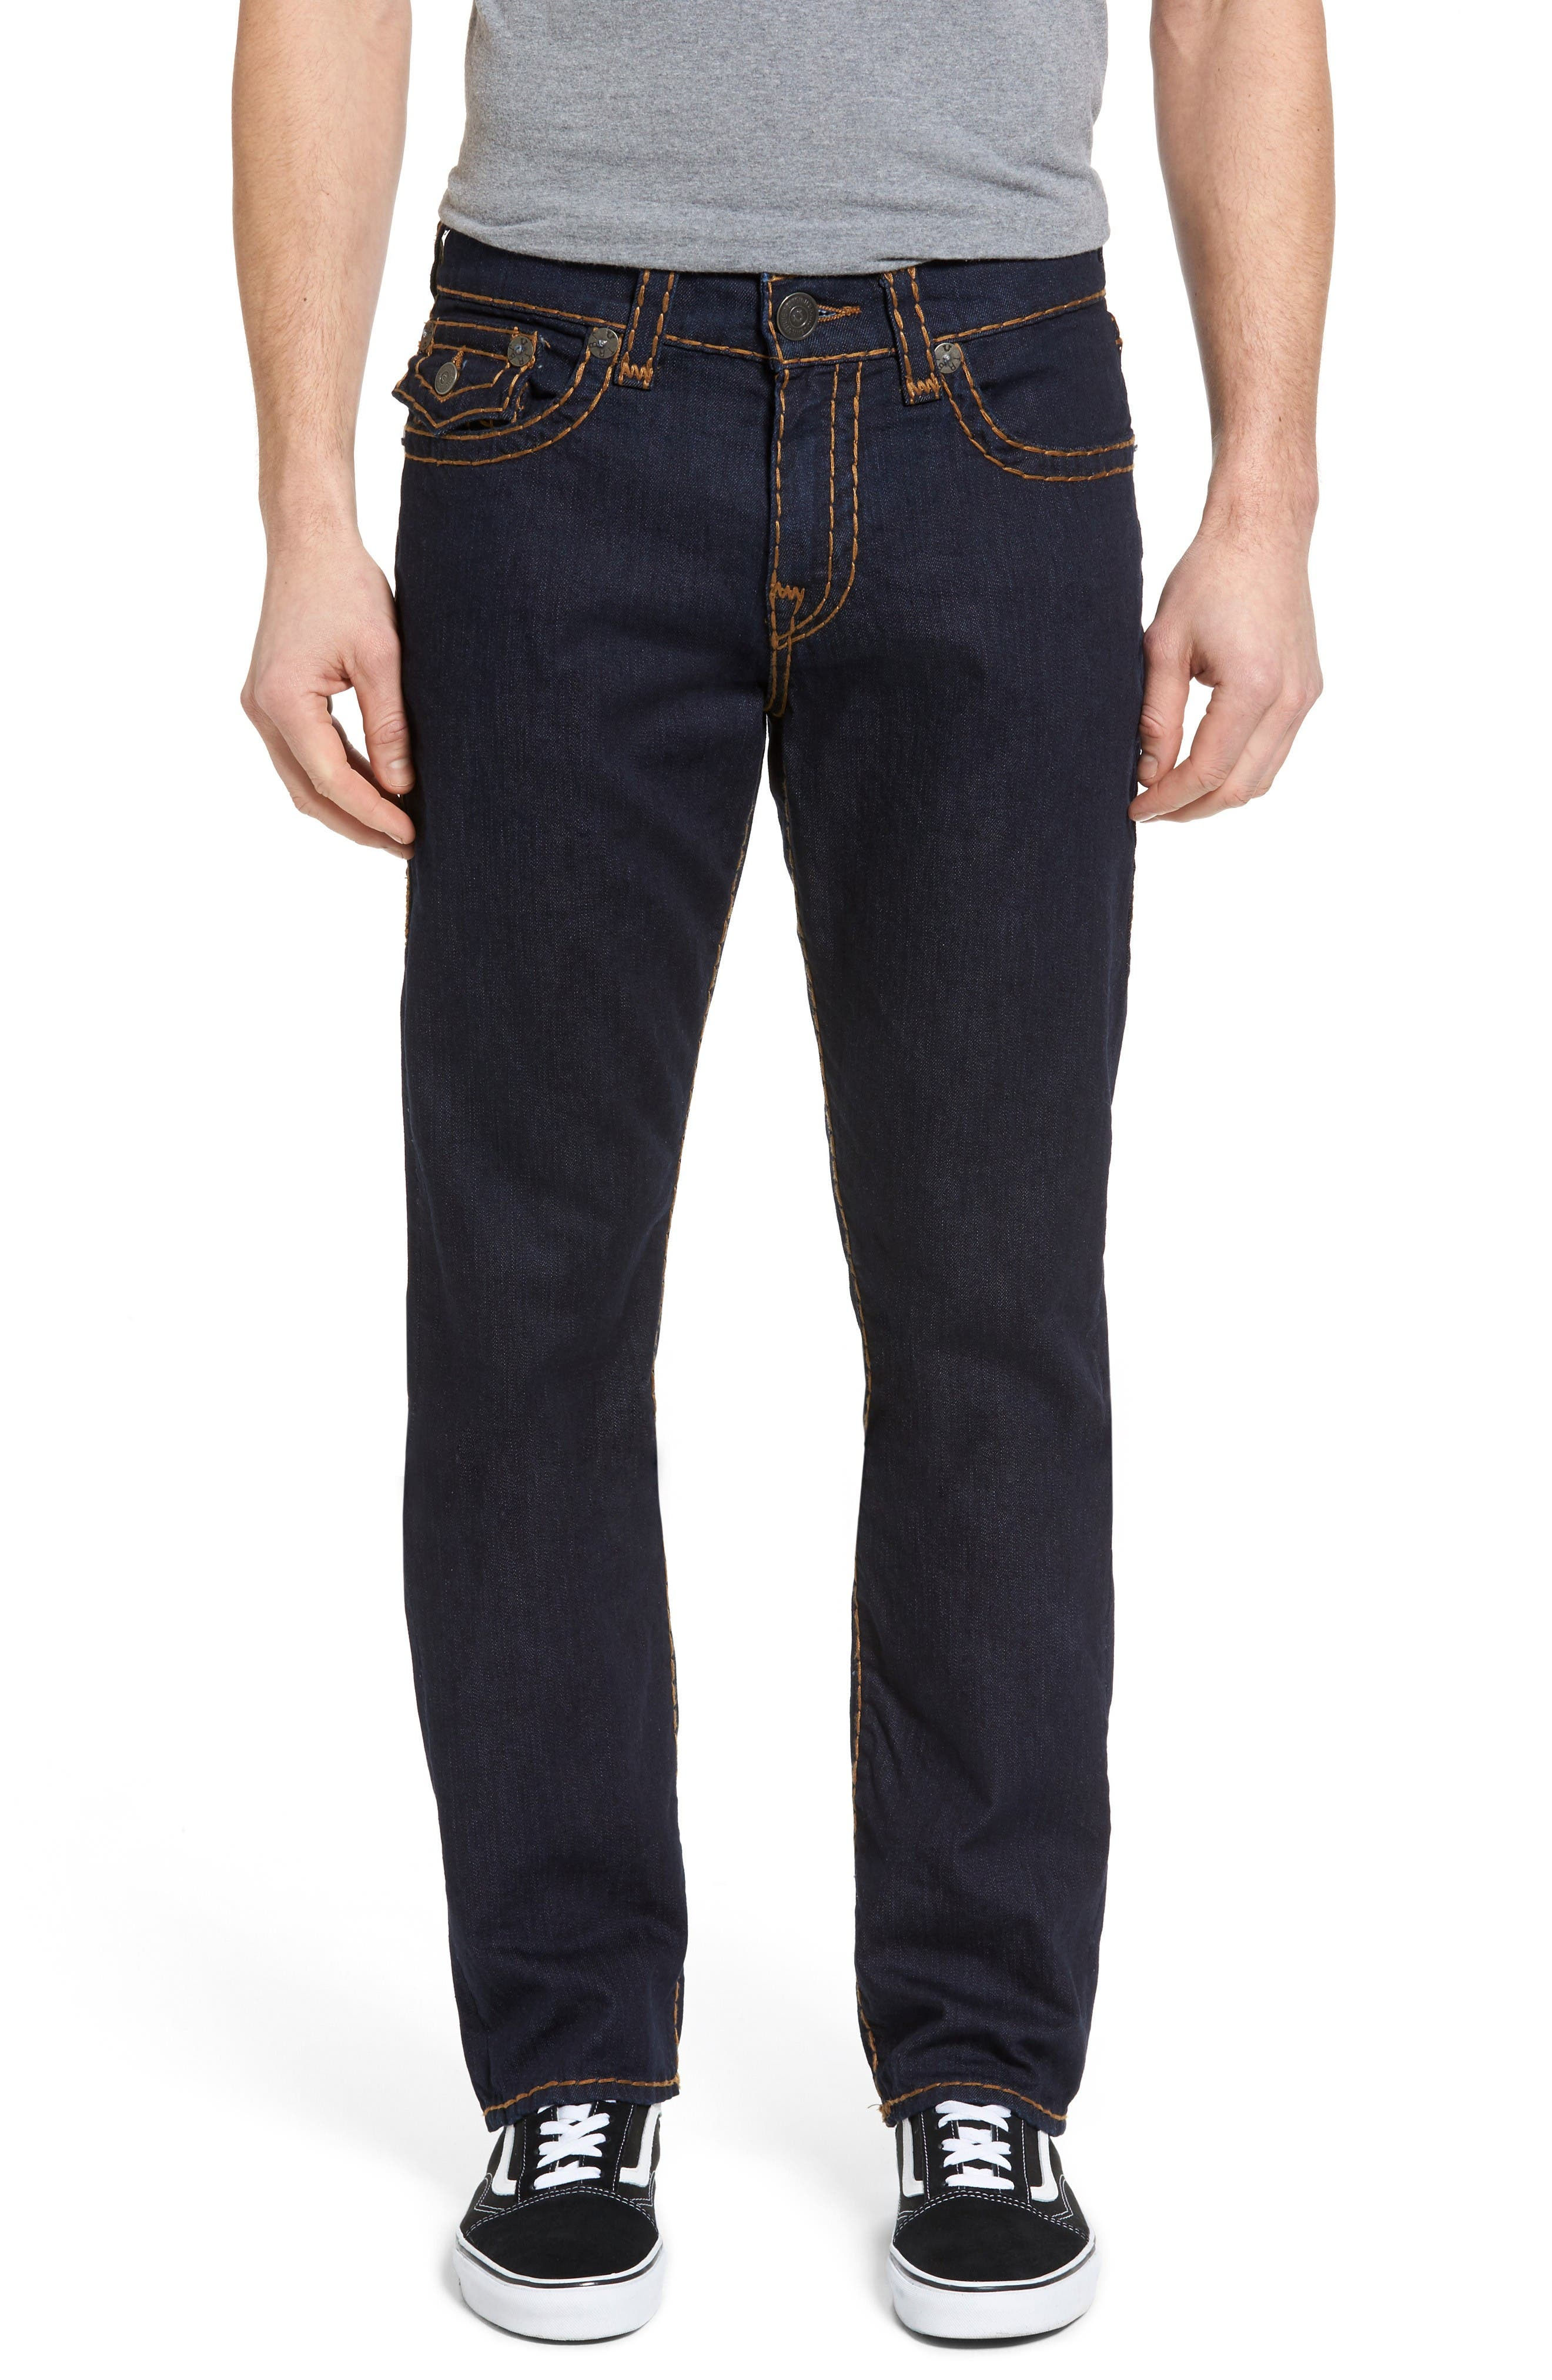 Ricky Relaxed Fit Jeans,                             Main thumbnail 1, color,                             2S Body Rinse